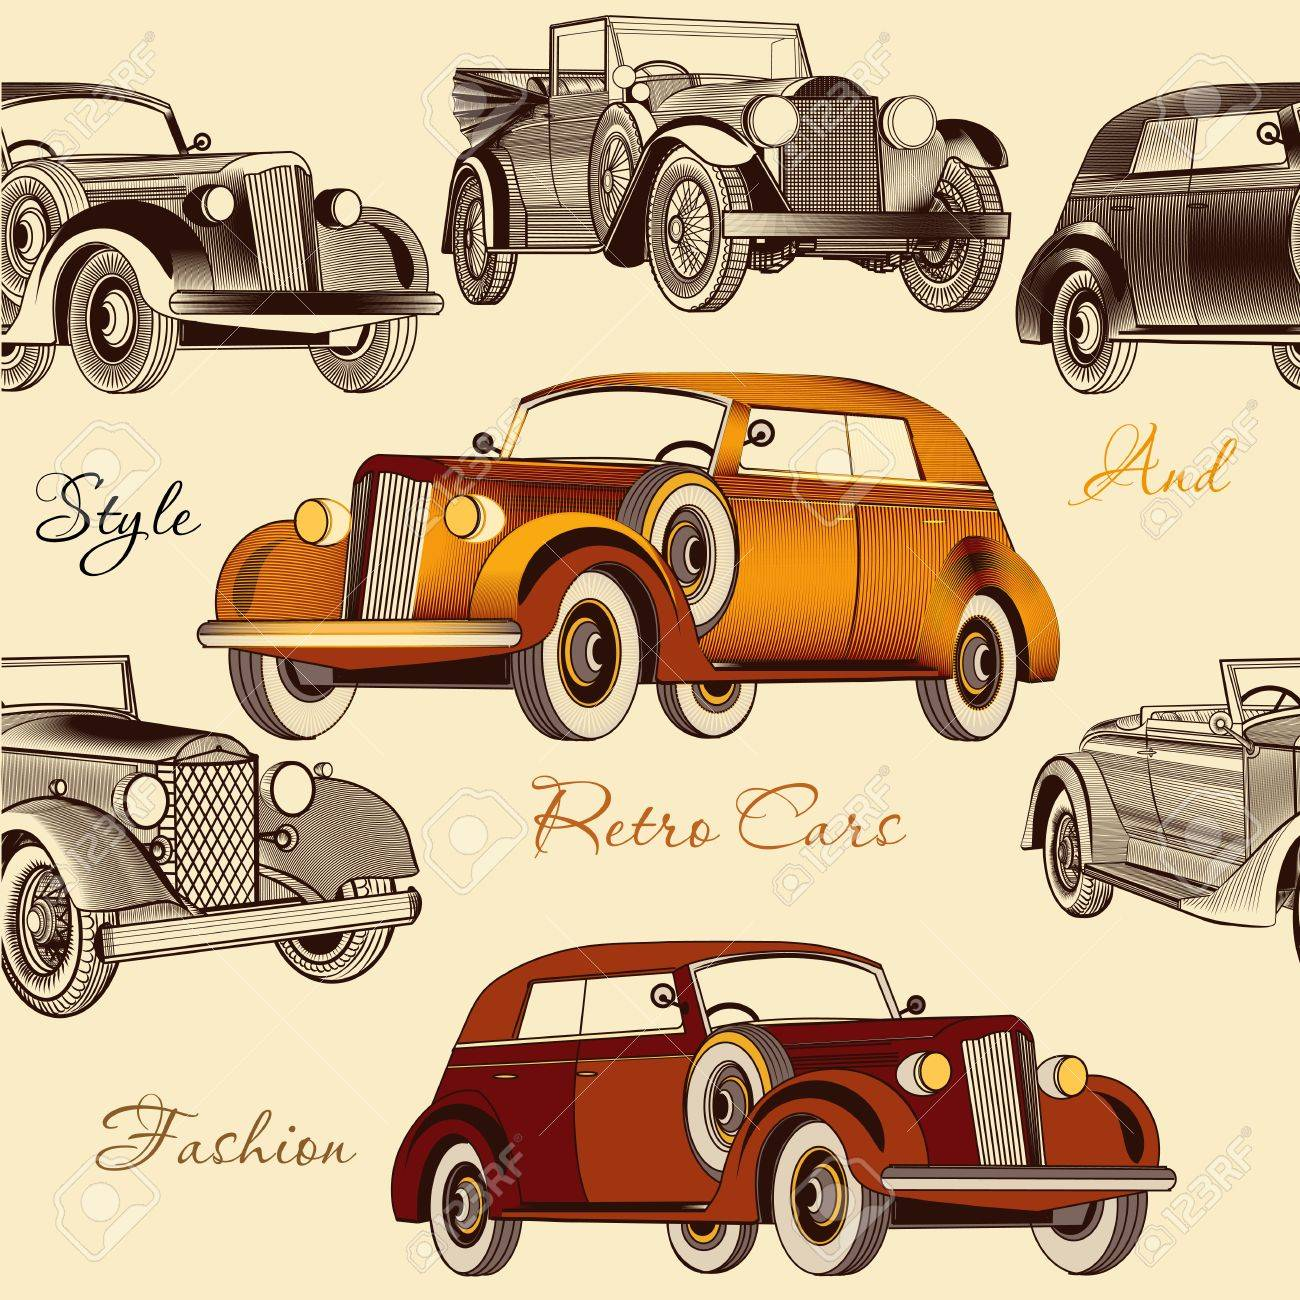 Vintage Seamless Wallpaper Pattern With Retro Cars Royalty Free